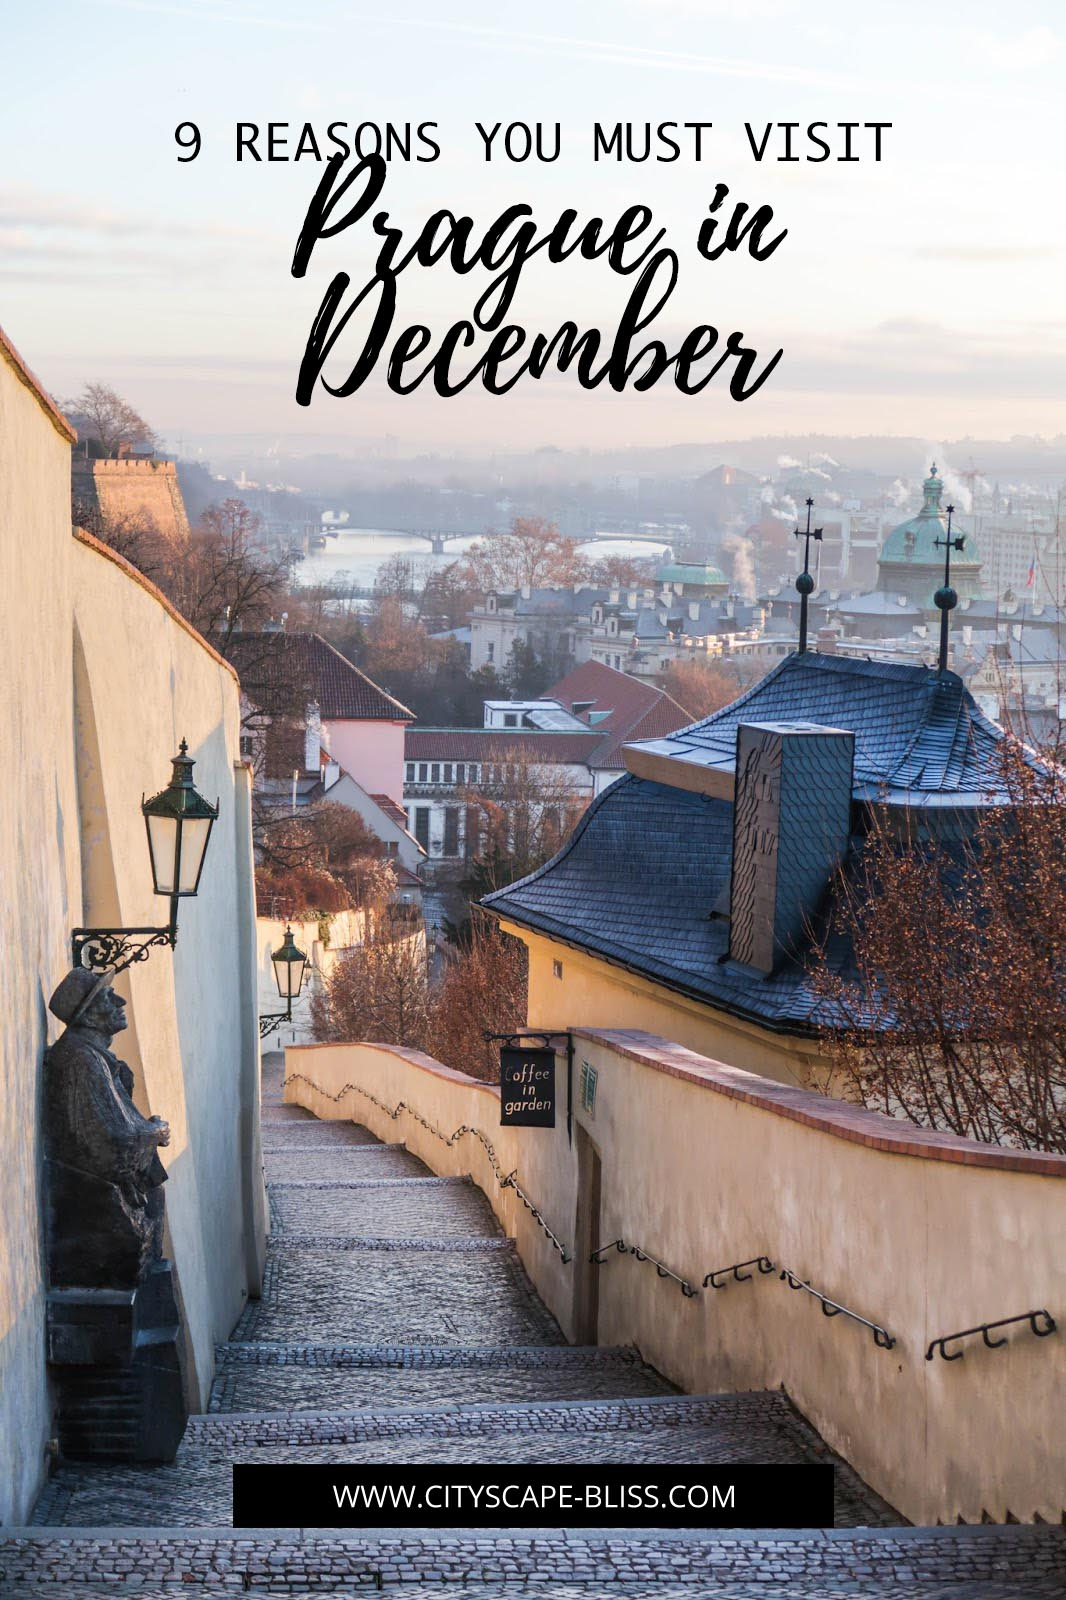 9 reasons you MUST visit Prague in December